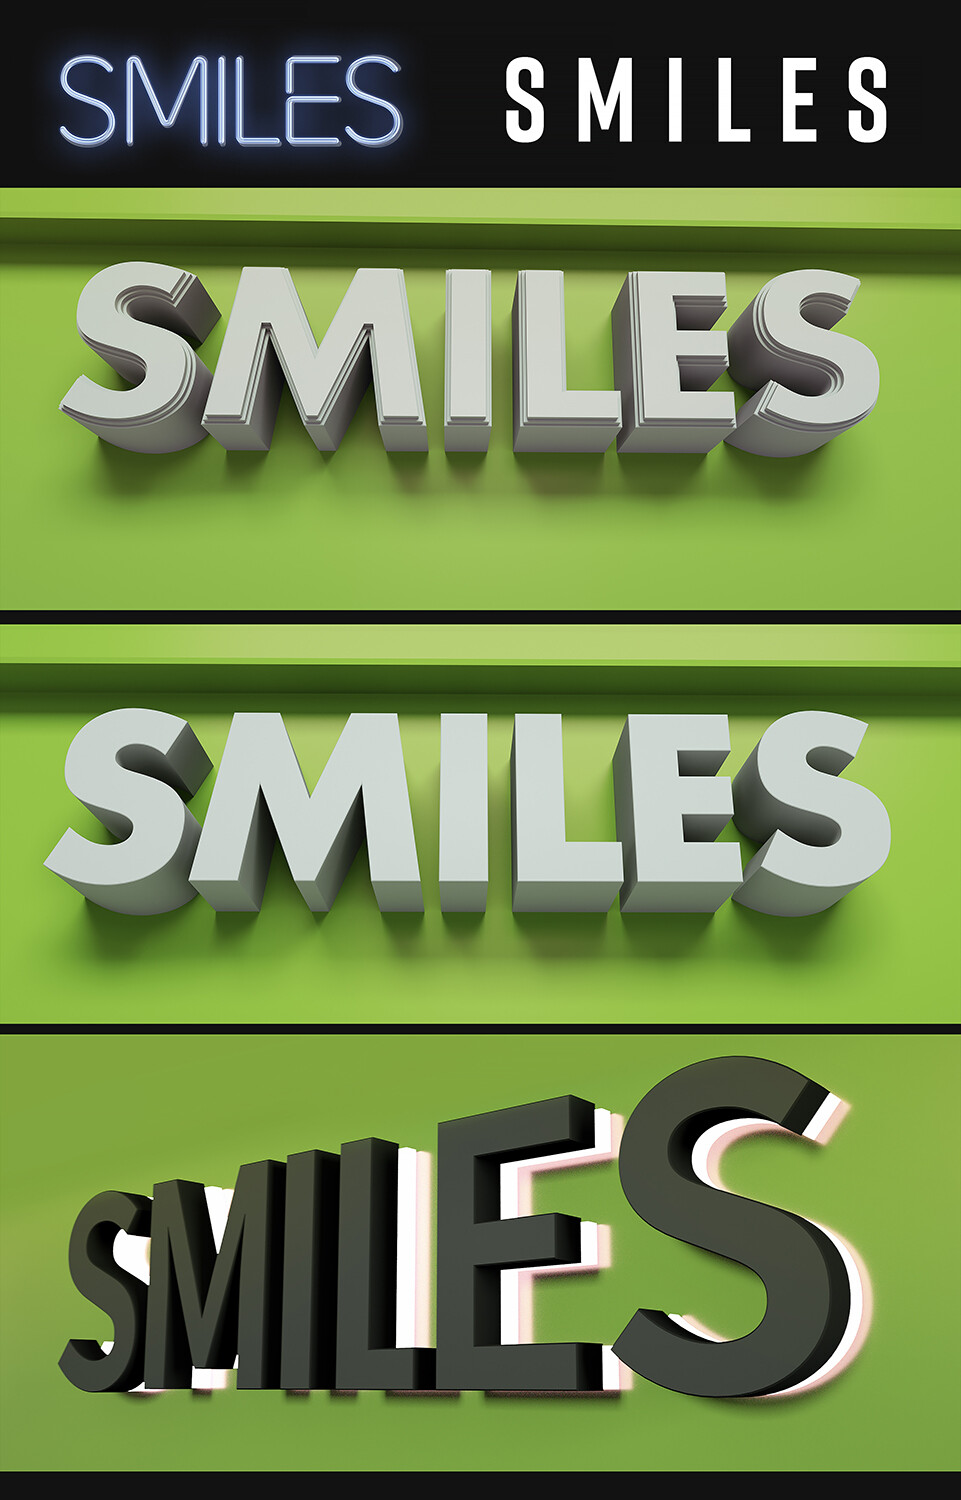 Tests for Smiles